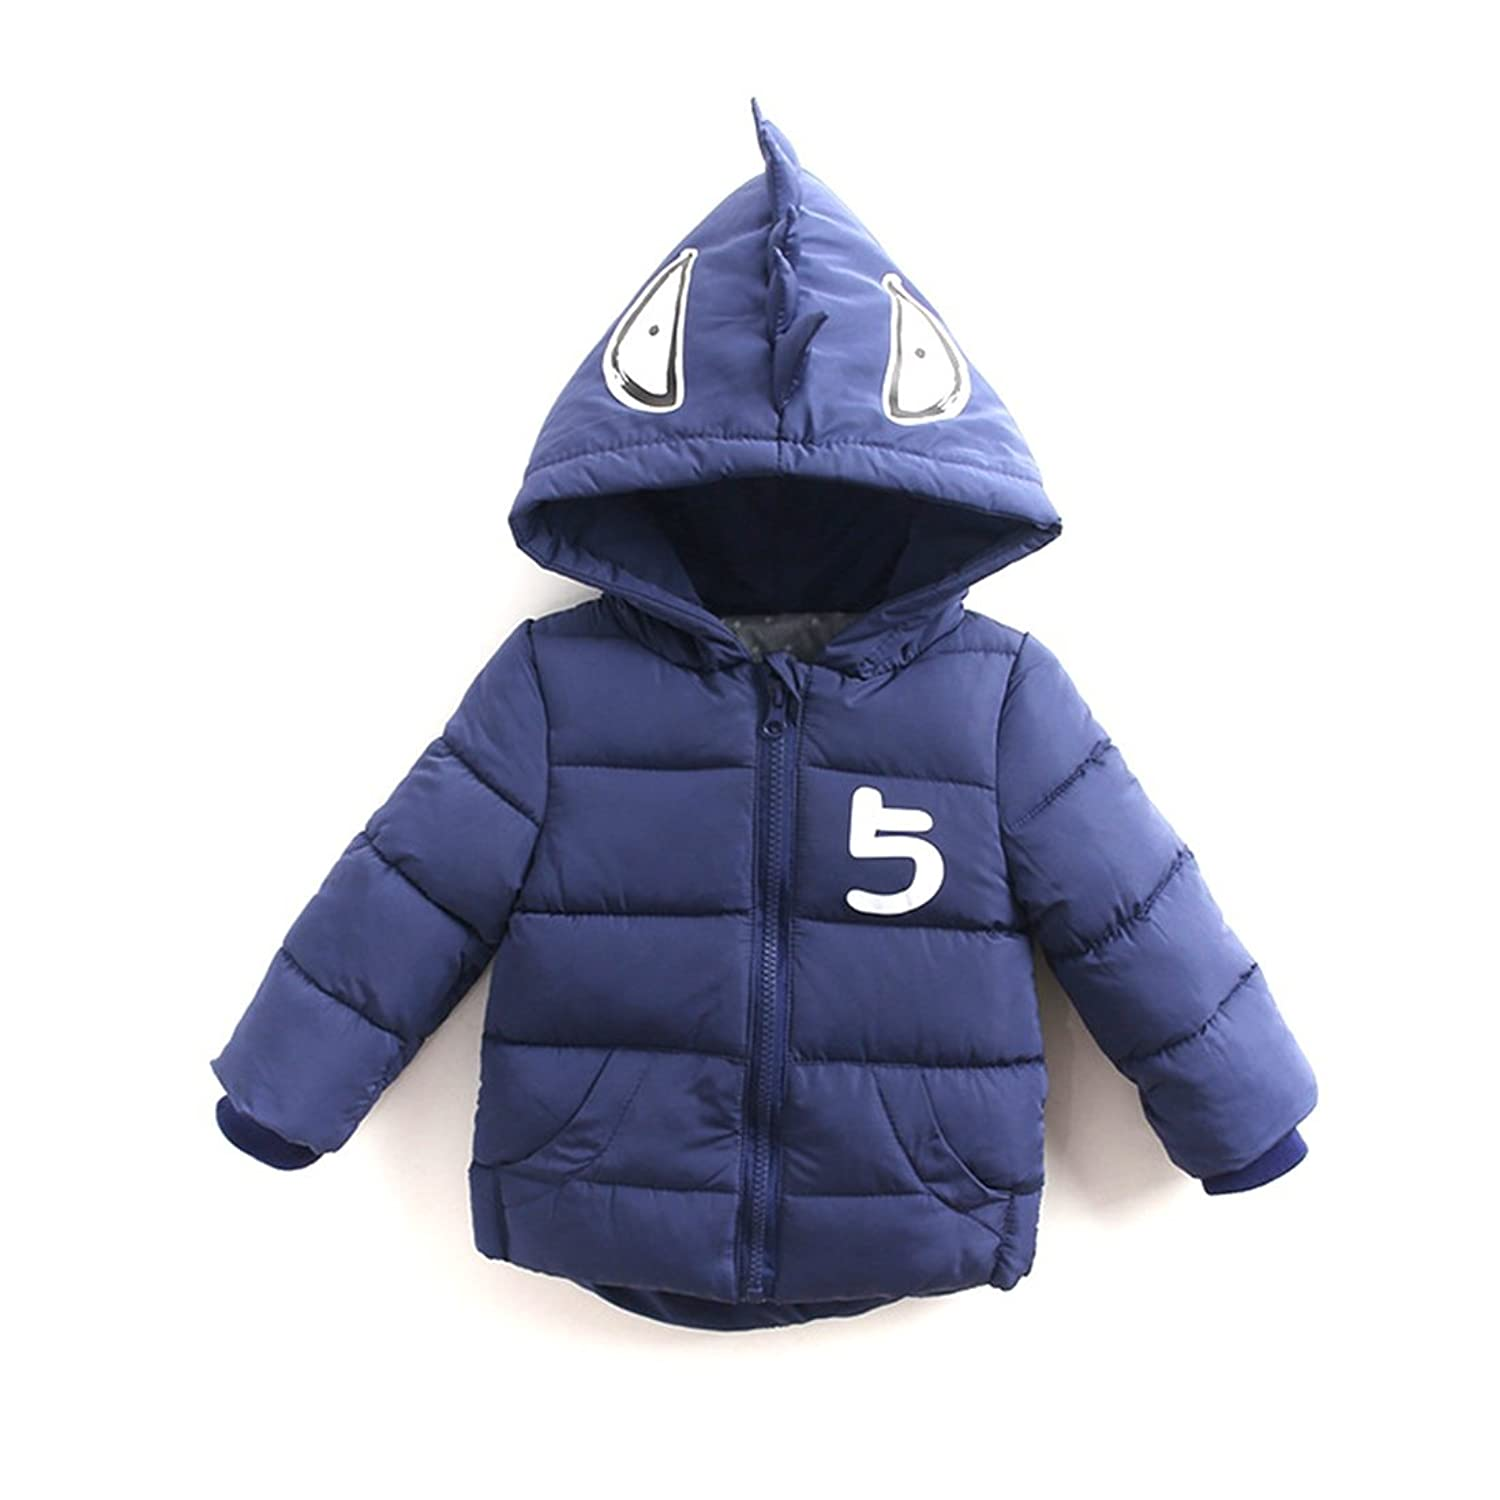 4905052c8 Foyeria Outdoor Down Jacket Coat Winter Monster Hooded Outerwear For ...